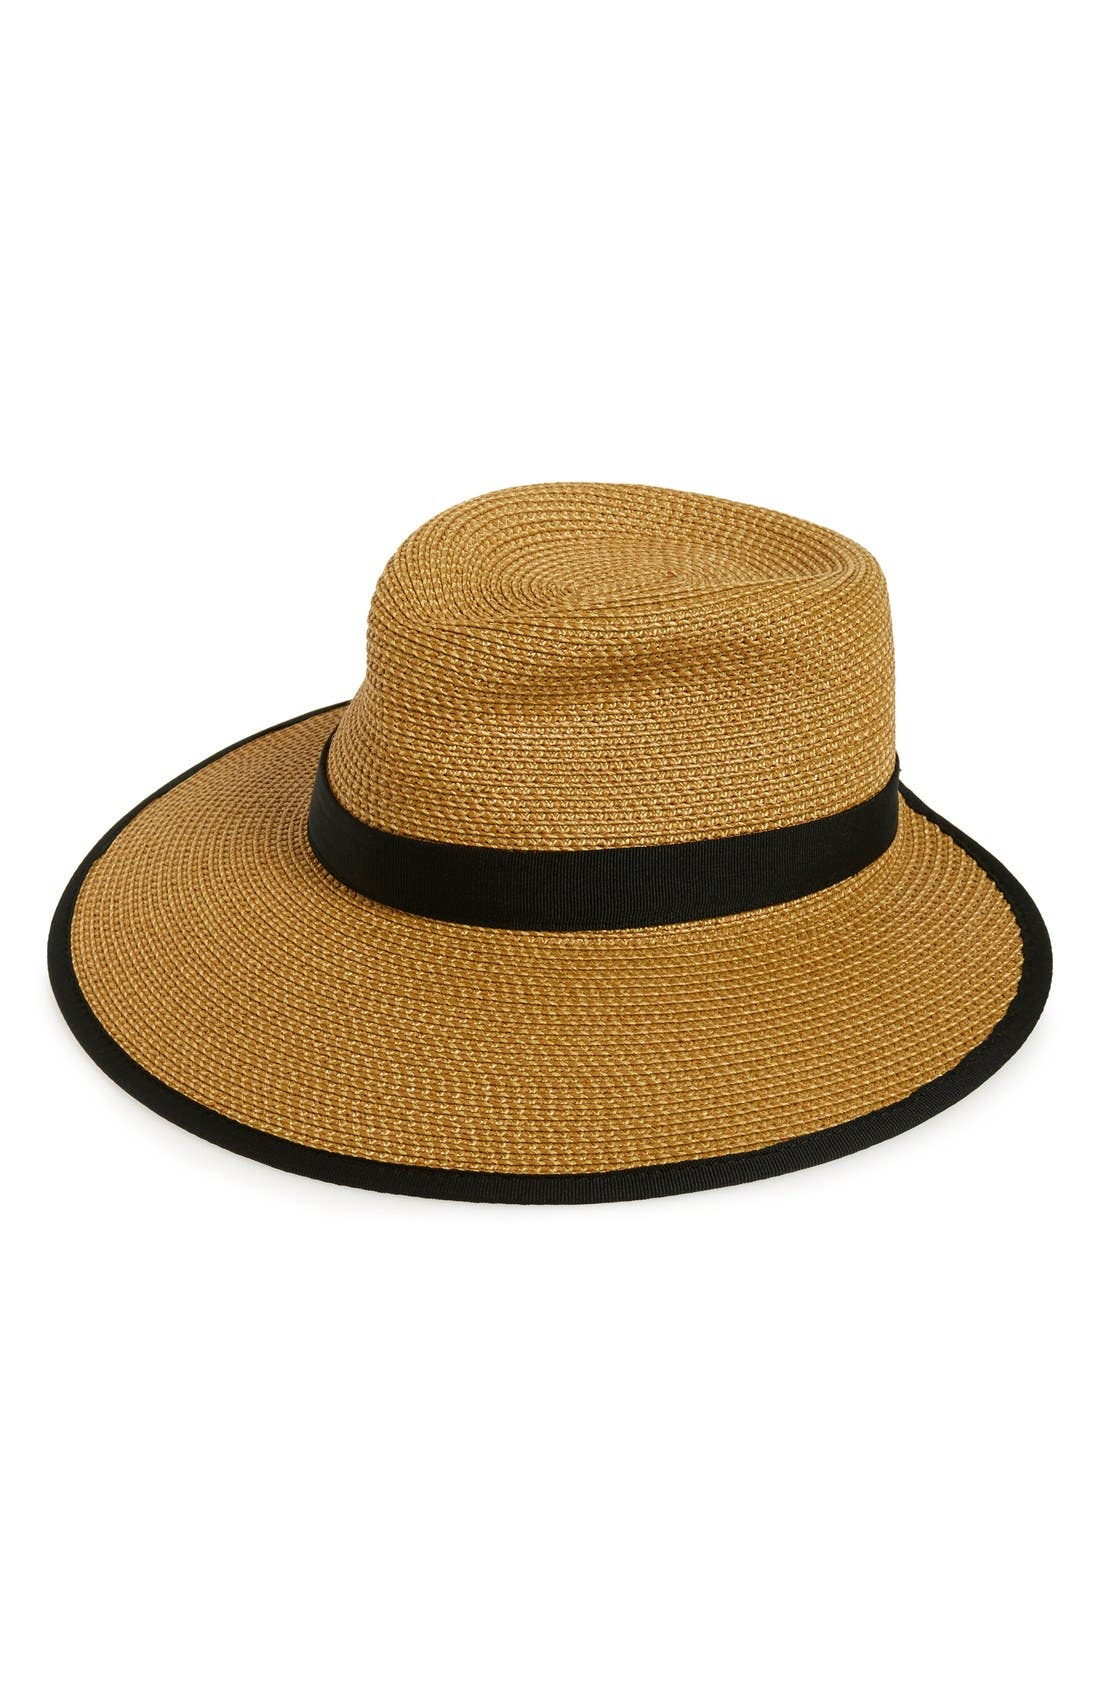 ERIC JAVITS, 'Sun Crest' Packable Hybrid Fedora Visor, Main thumbnail 1, color, NATURAL/ BLACK